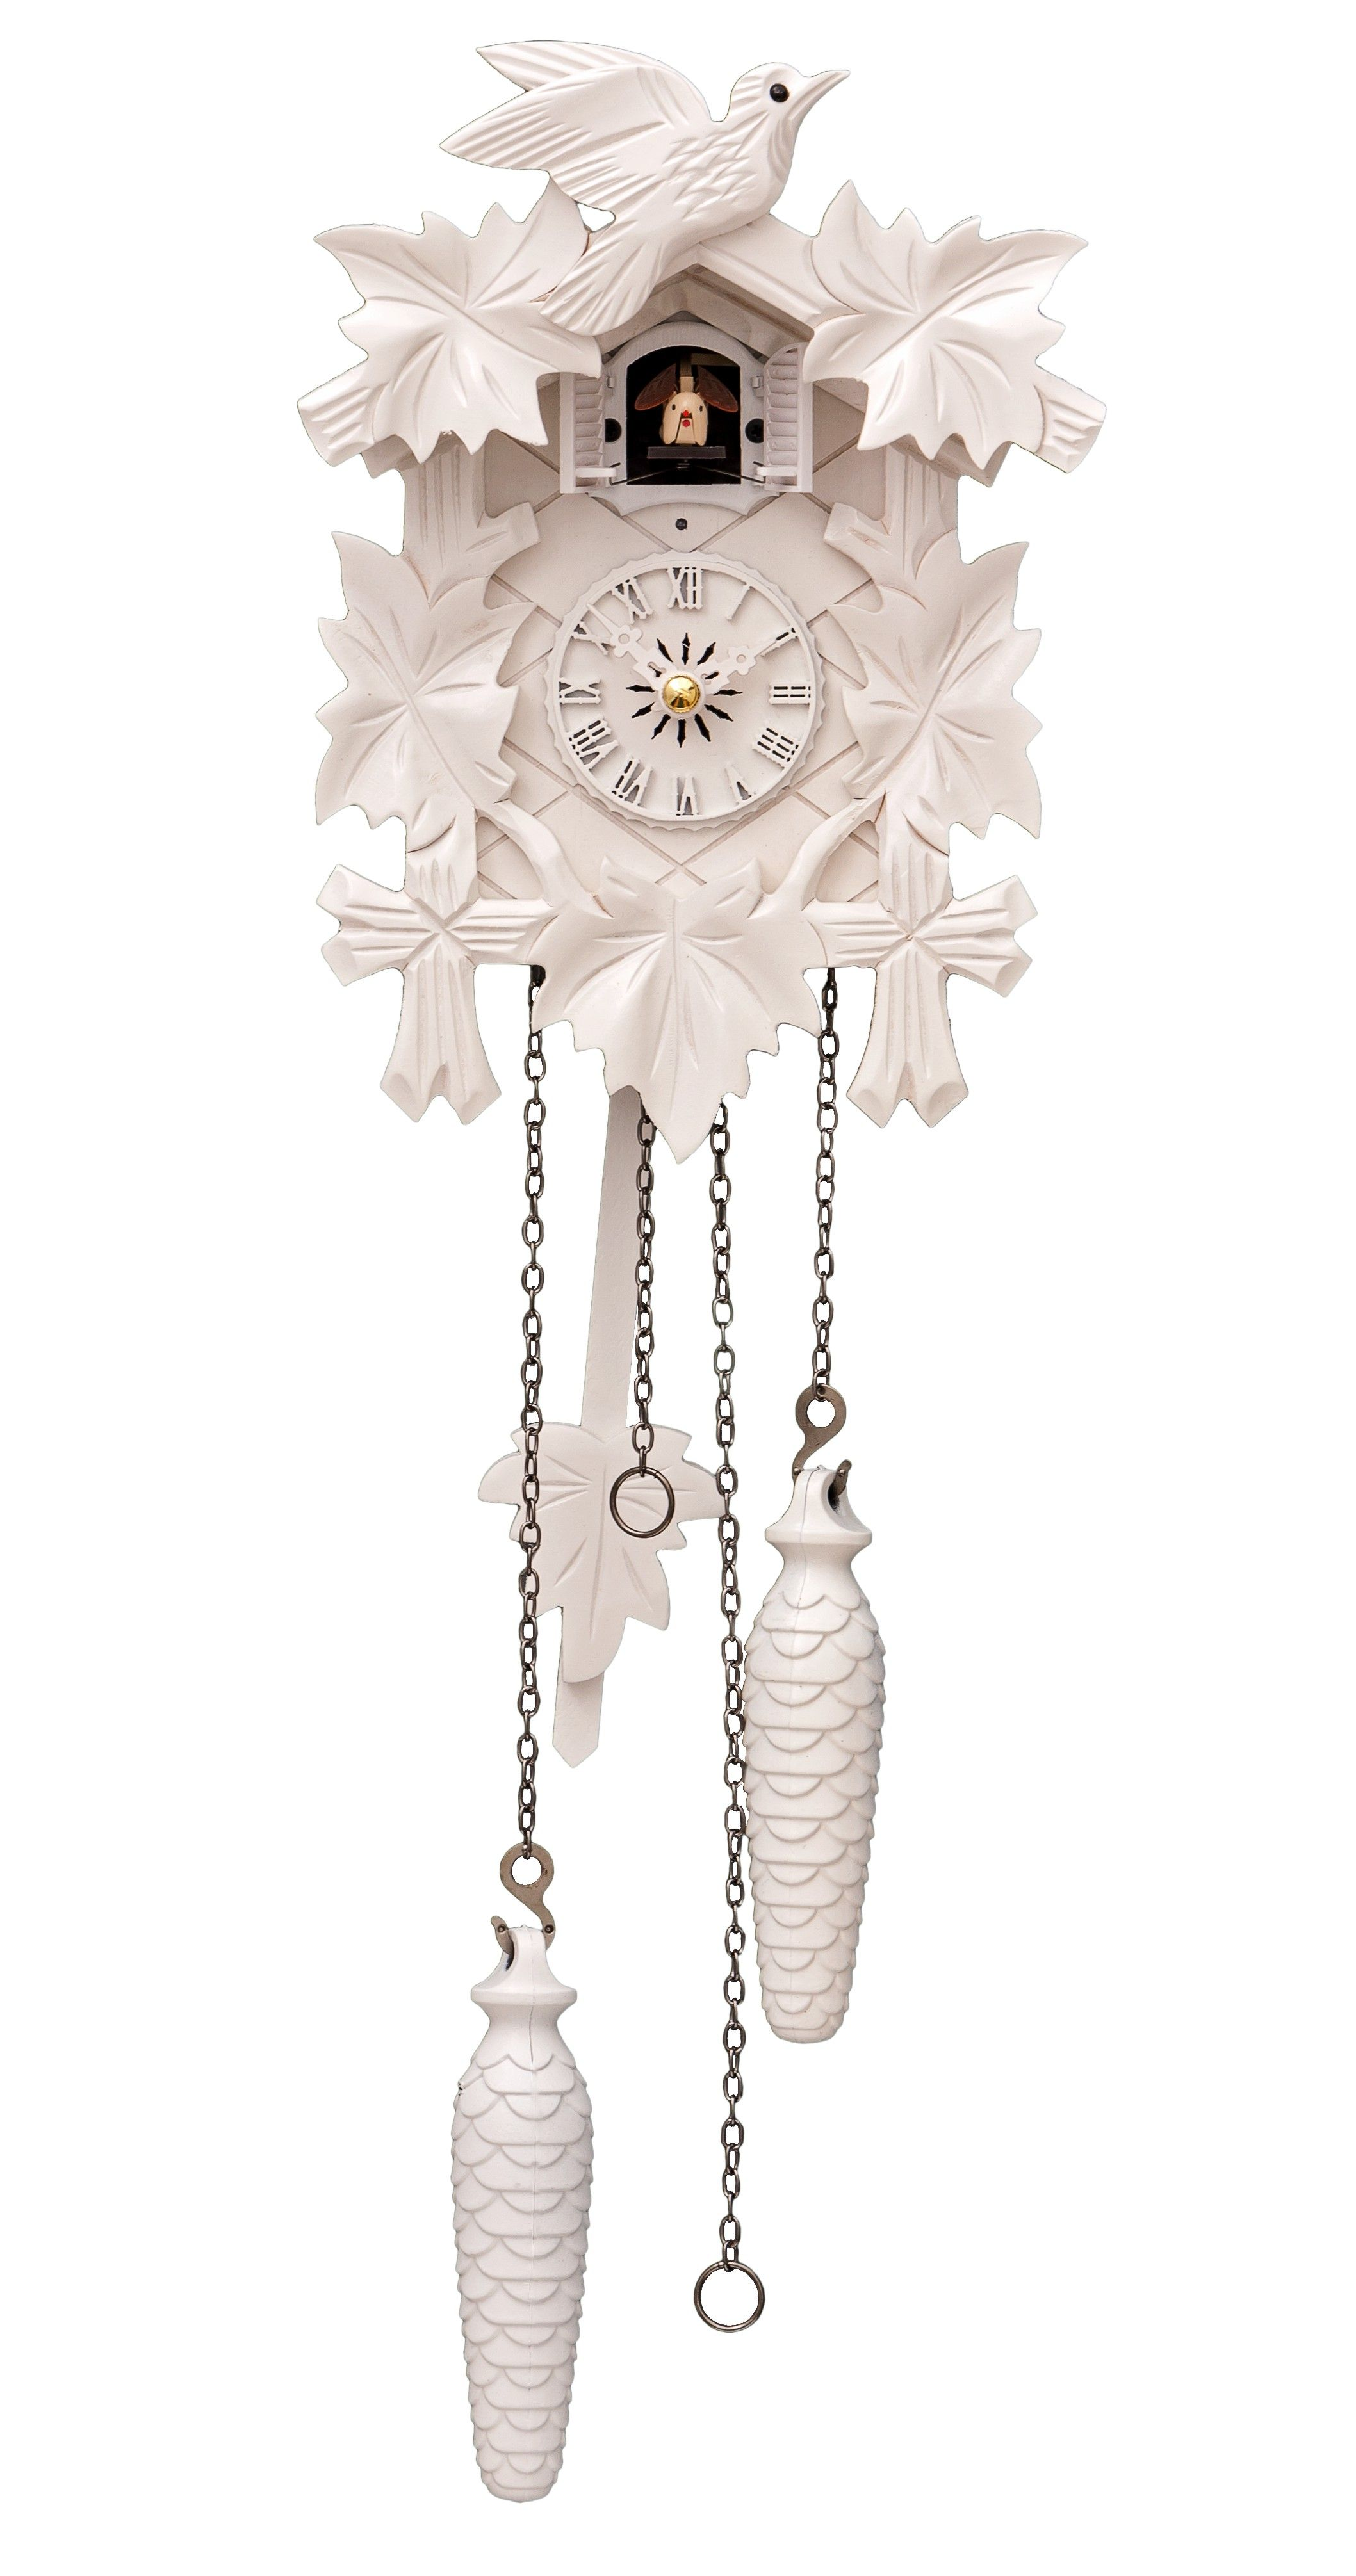 Cuckoo Clock Five Leaves Bird 1 Day Running Time Modern Cuckoo Clocks Cuckoo Clock Clock